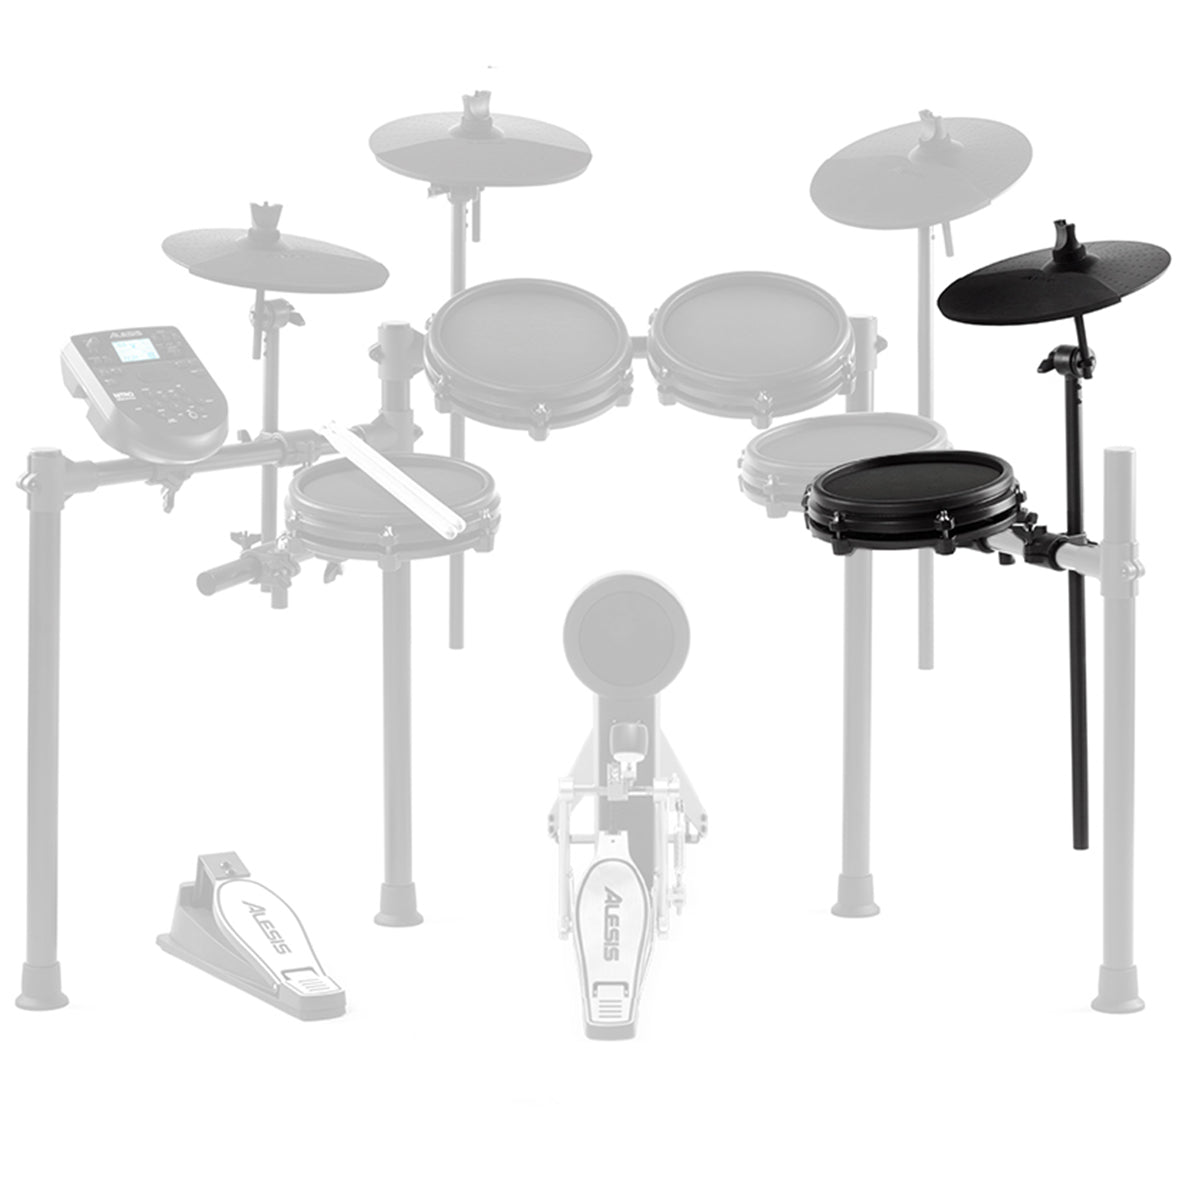 Alesis Nitro Drum Expansion Pack w/ Mesh Tom & Cymbal